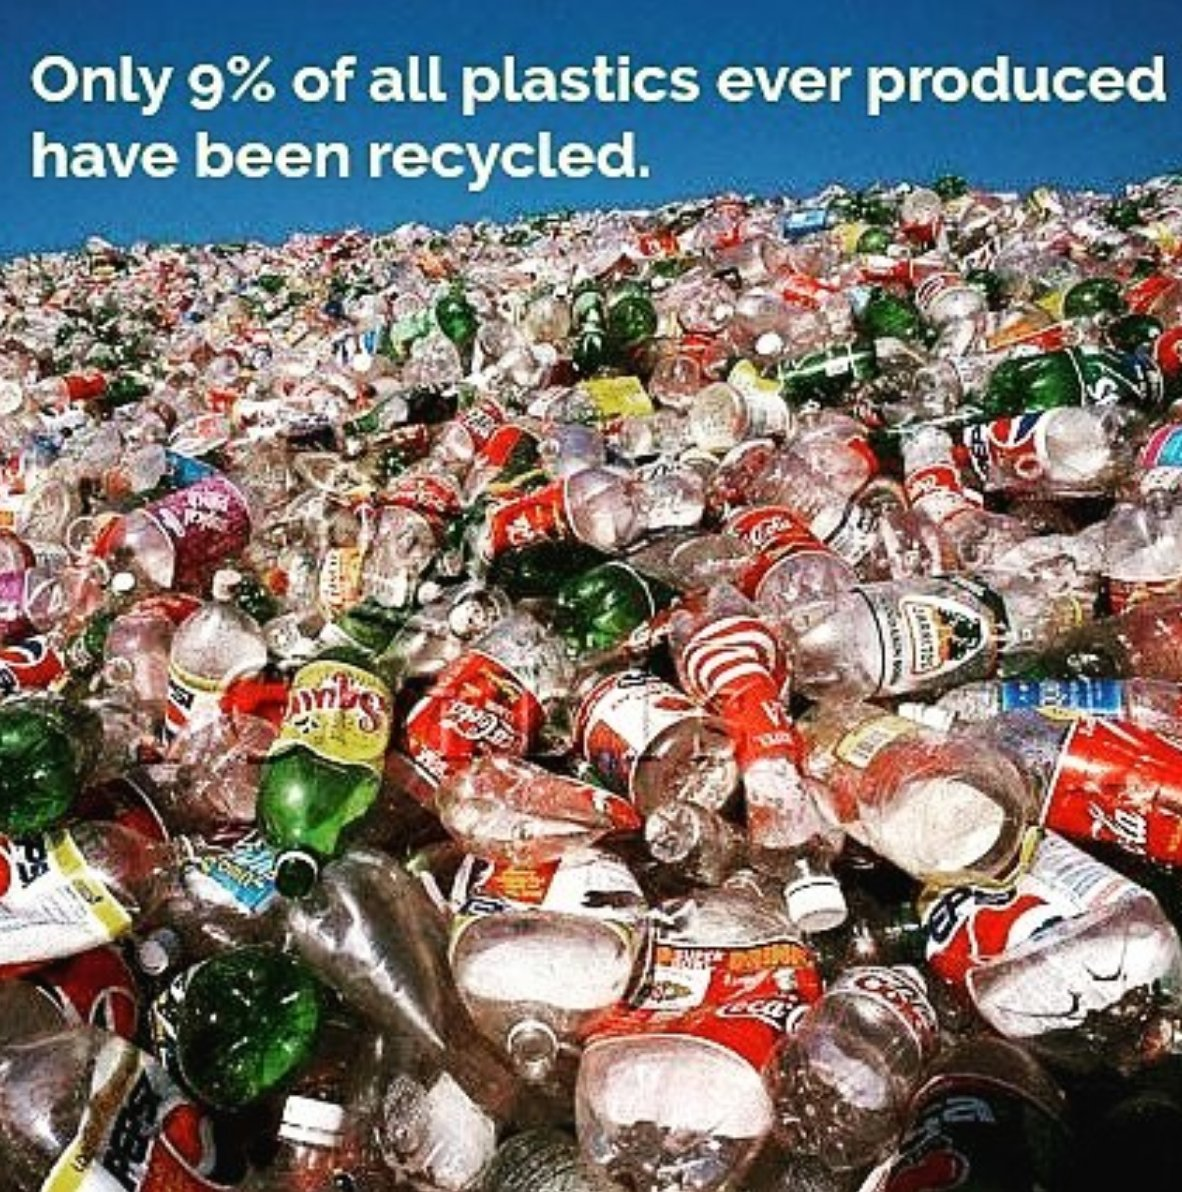 RT to spread awareness! 18.2 trillion pounds of plastics have been made, and only 9% have been recycled. Via @LifeWoutPlastic #recycle <br>http://pic.twitter.com/4wwvAMUfLt